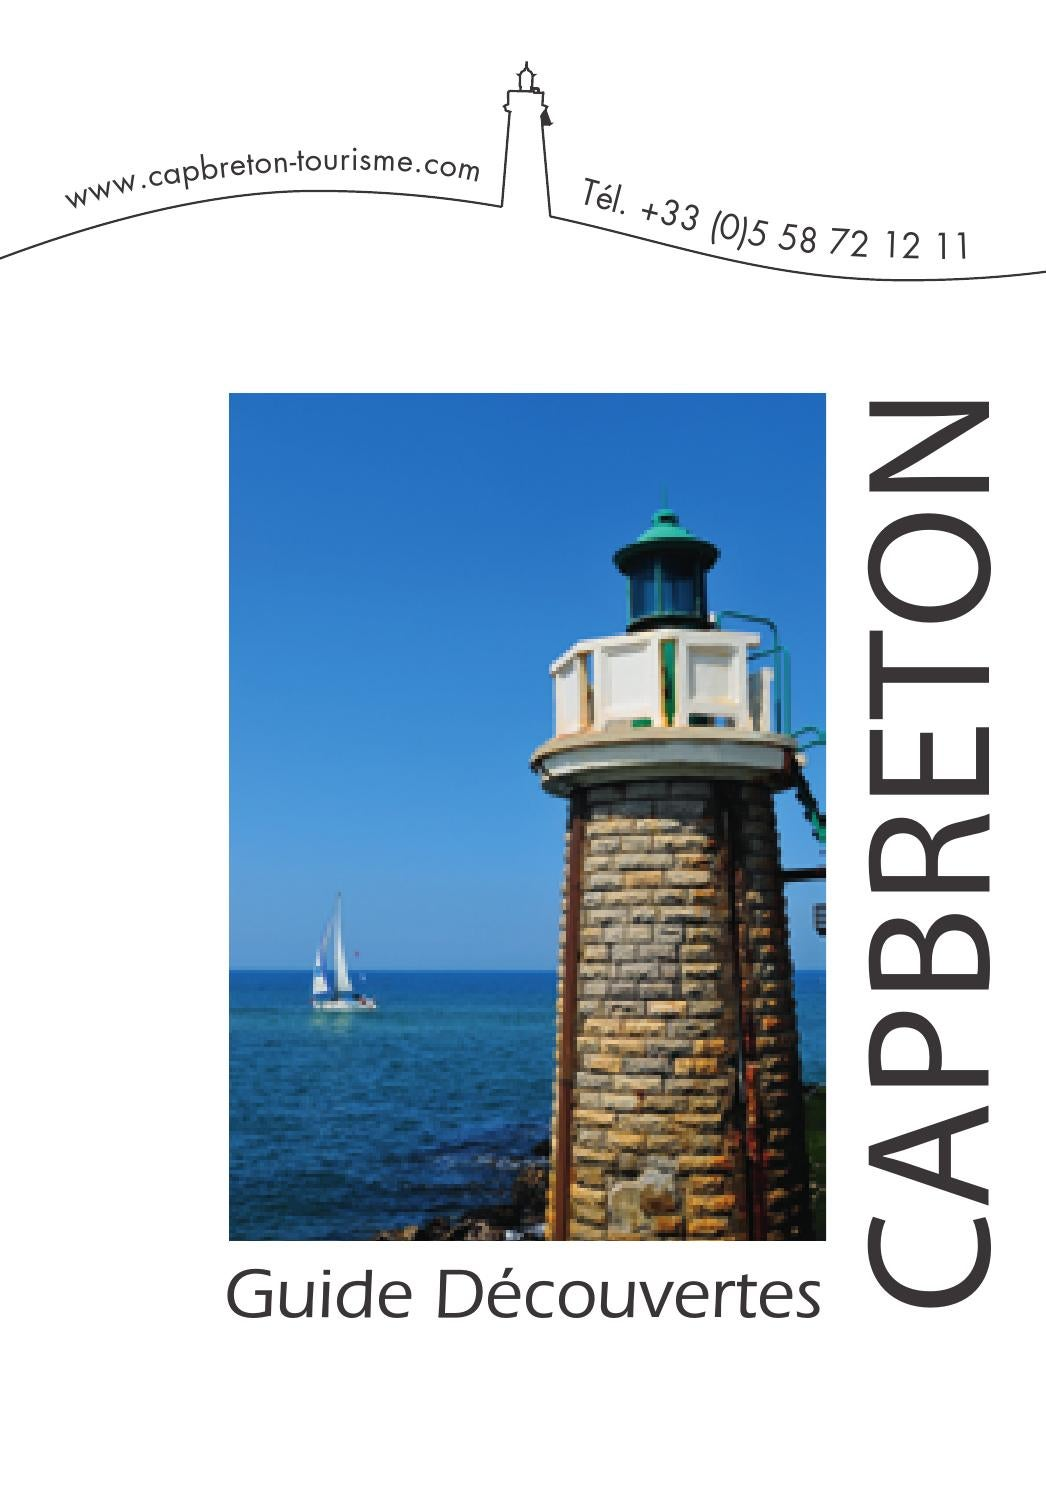 Guide decouvertes 2013 by office de tourisme de capbreton issuu - Office de tourisme cap breton ...